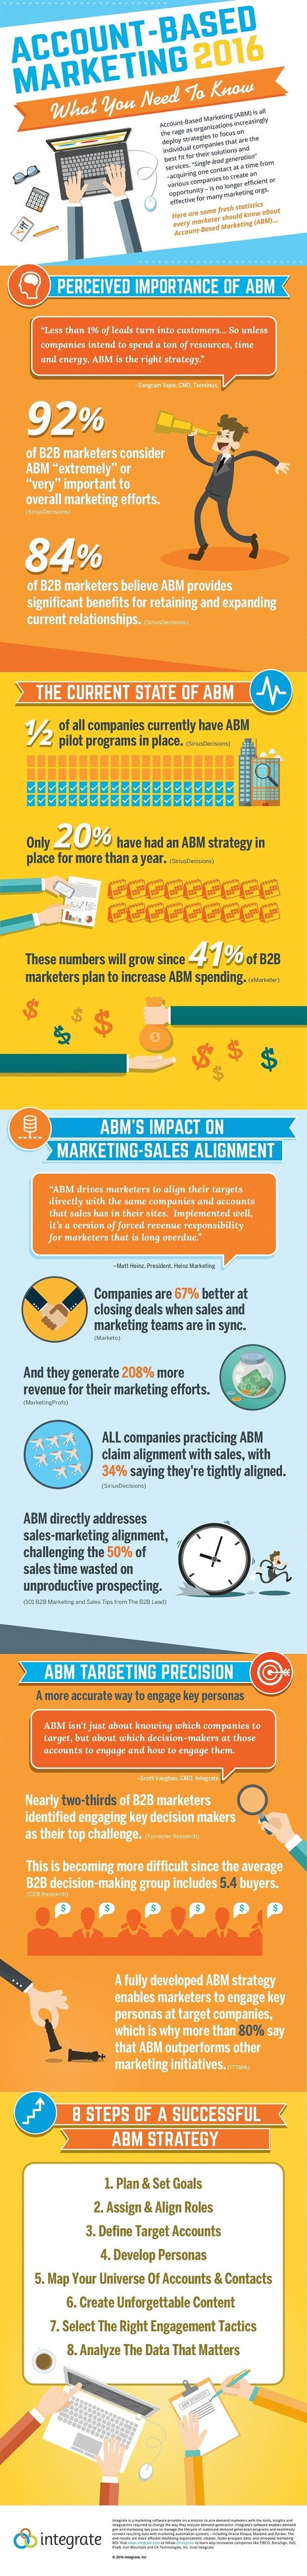 All about account-based marketing. This infographic has all the things you need to know about this hot topic!